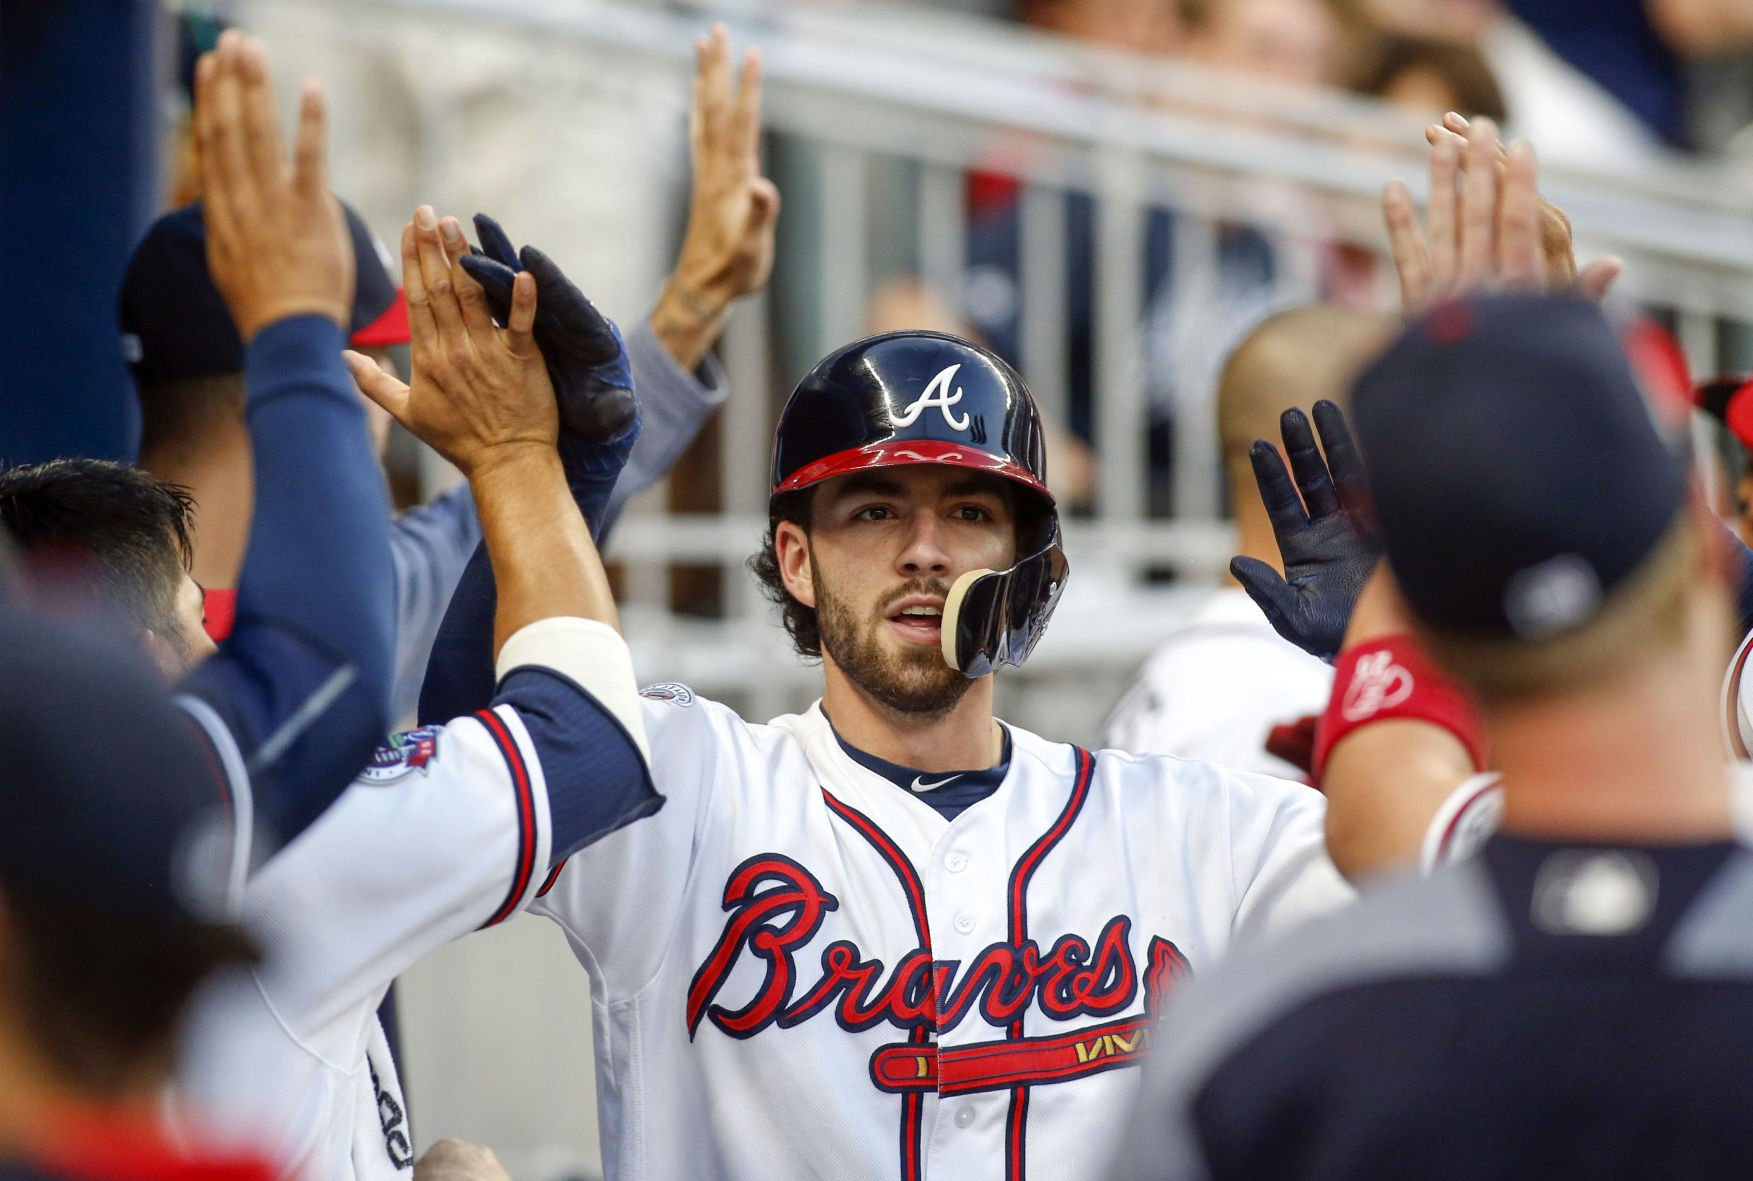 Braves To Send Dansby Swanson Down To Triple-A